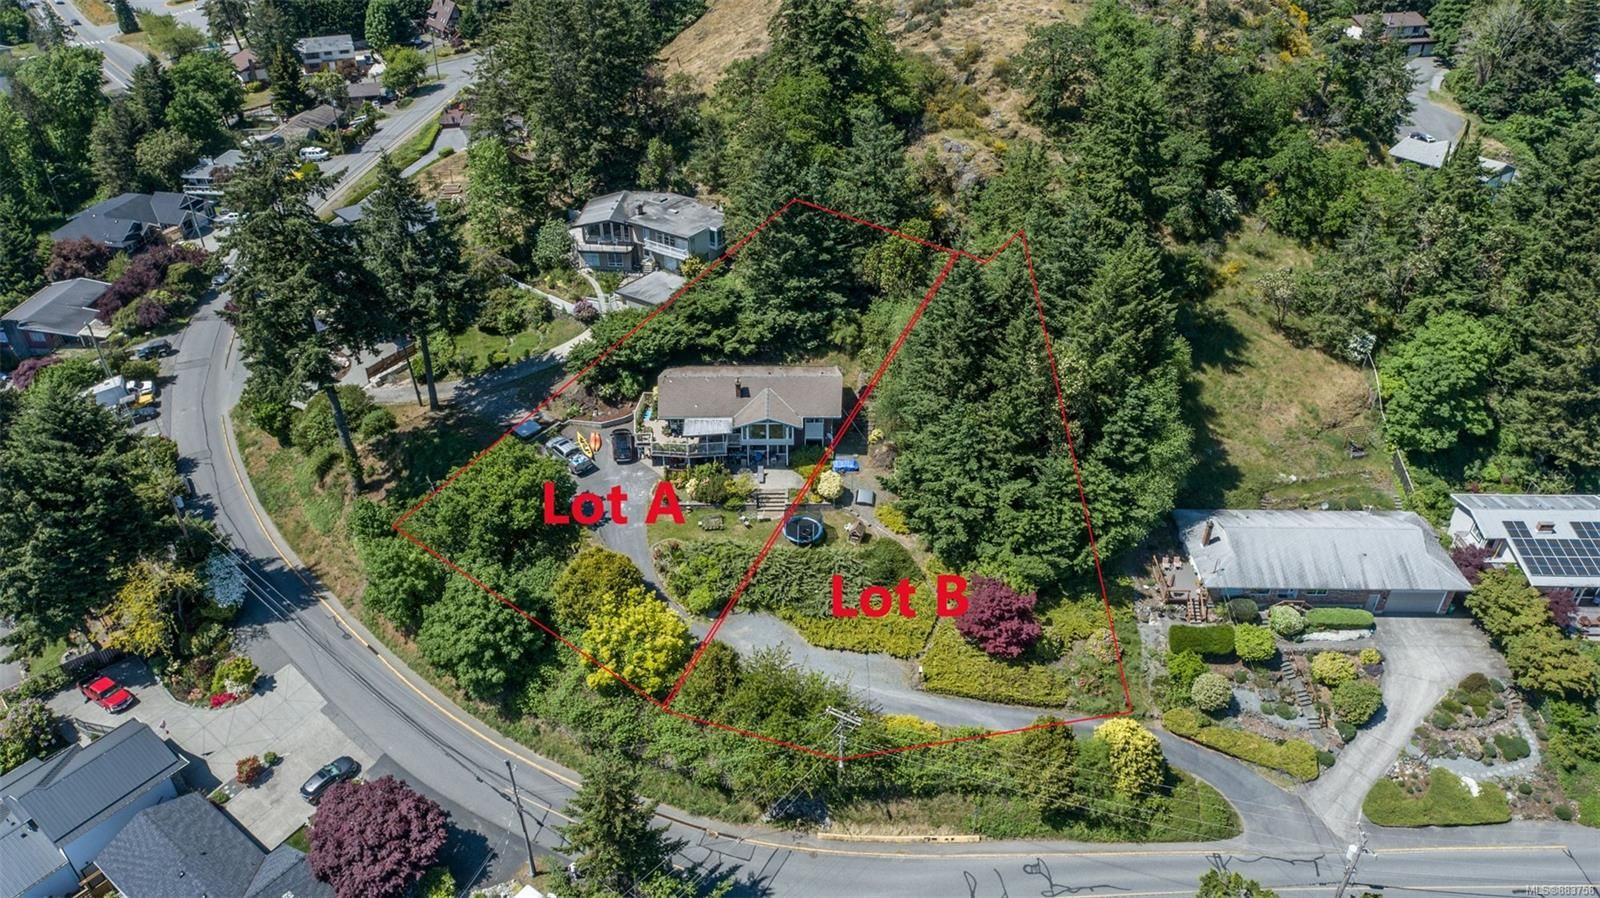 Main Photo: 1431 Sherwood Dr in : Na Departure Bay Other for sale (Nanaimo)  : MLS®# 883758